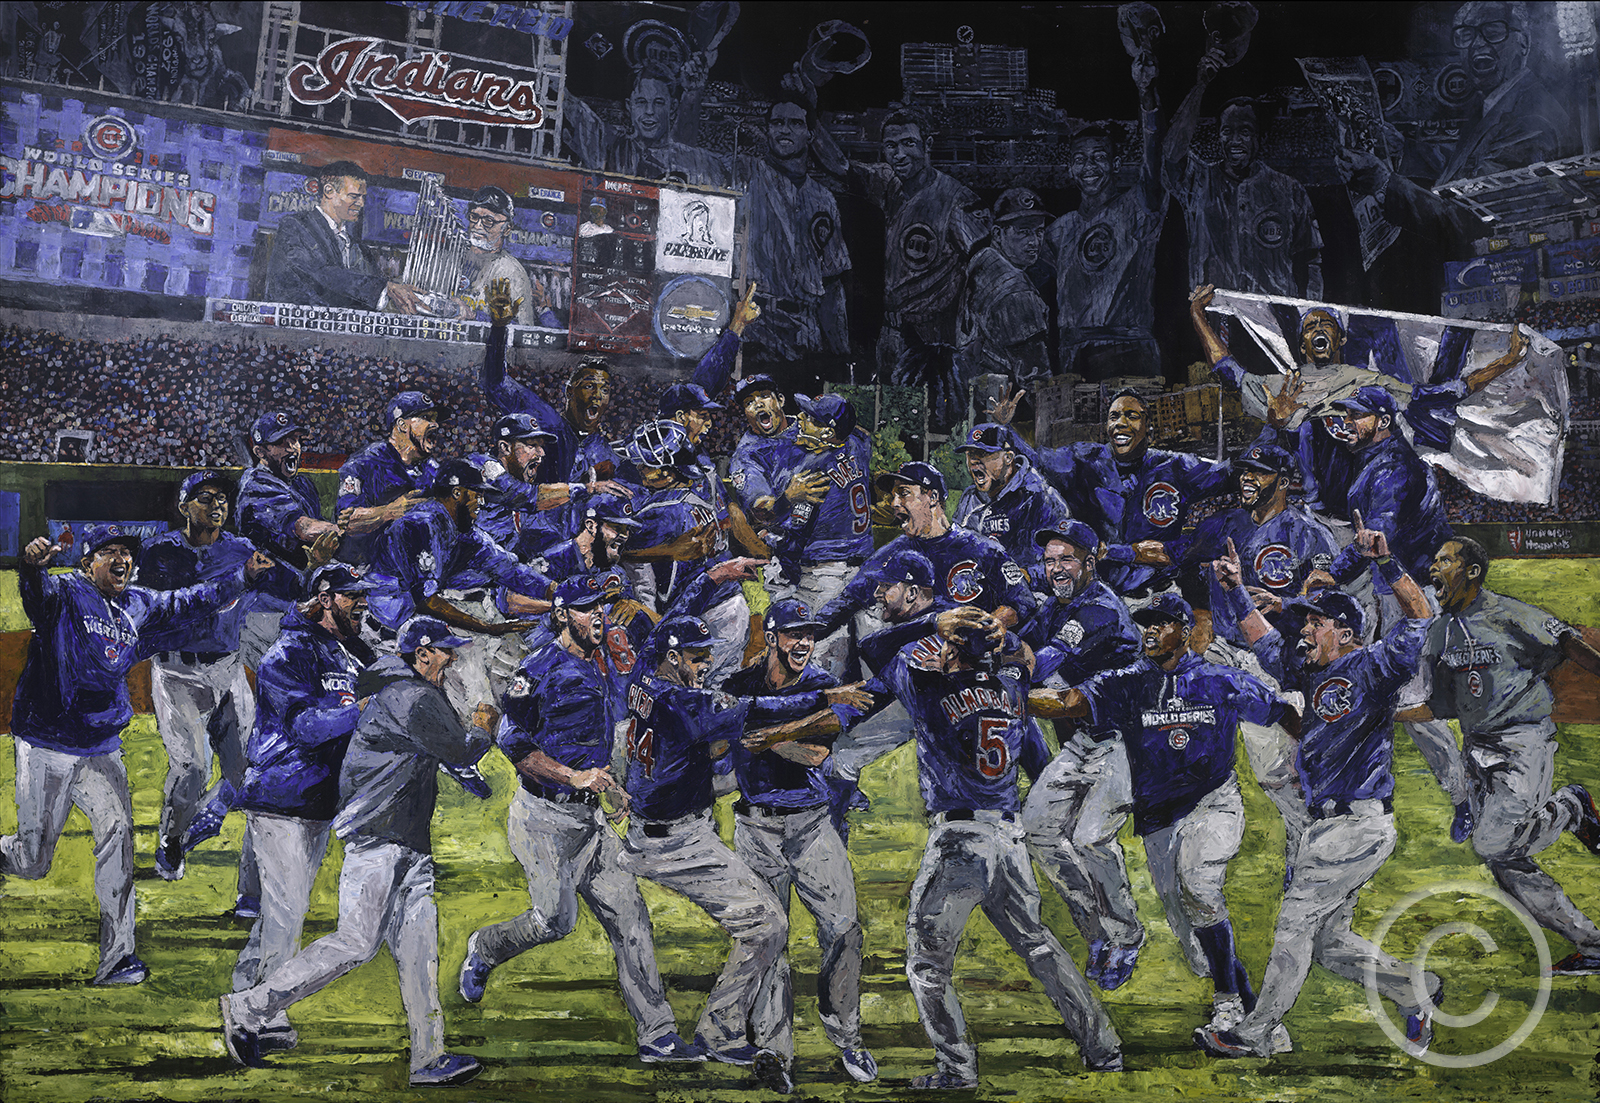 """Yahoo Sports """"MLB-sanctioned artist depicts Cubs' World Series win with painting"""""""